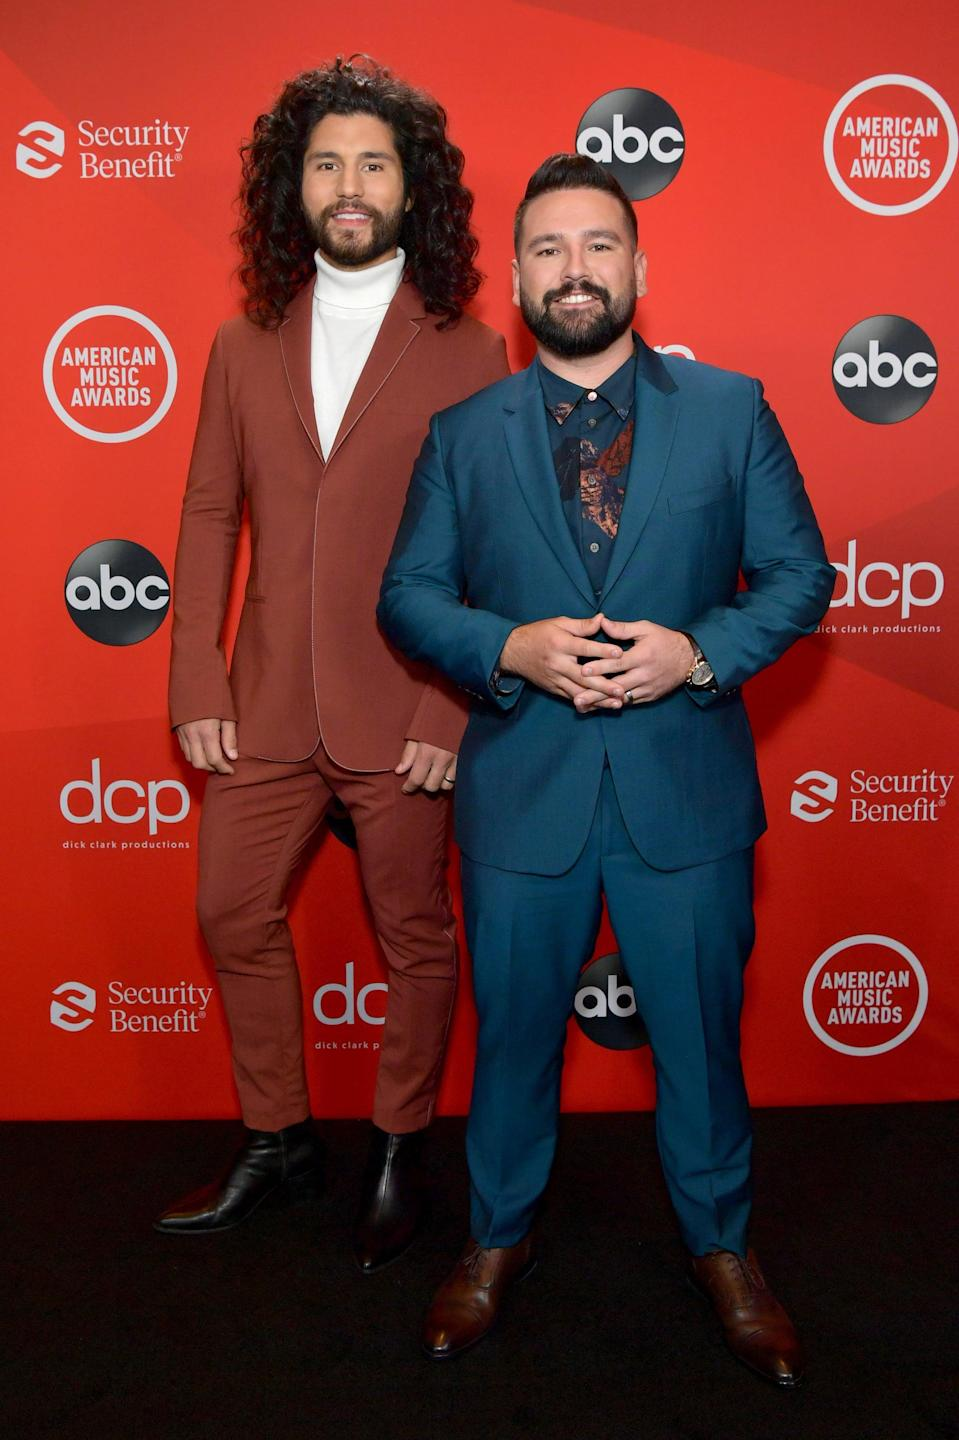 <p>Wearing jewel-toned suits.</p>